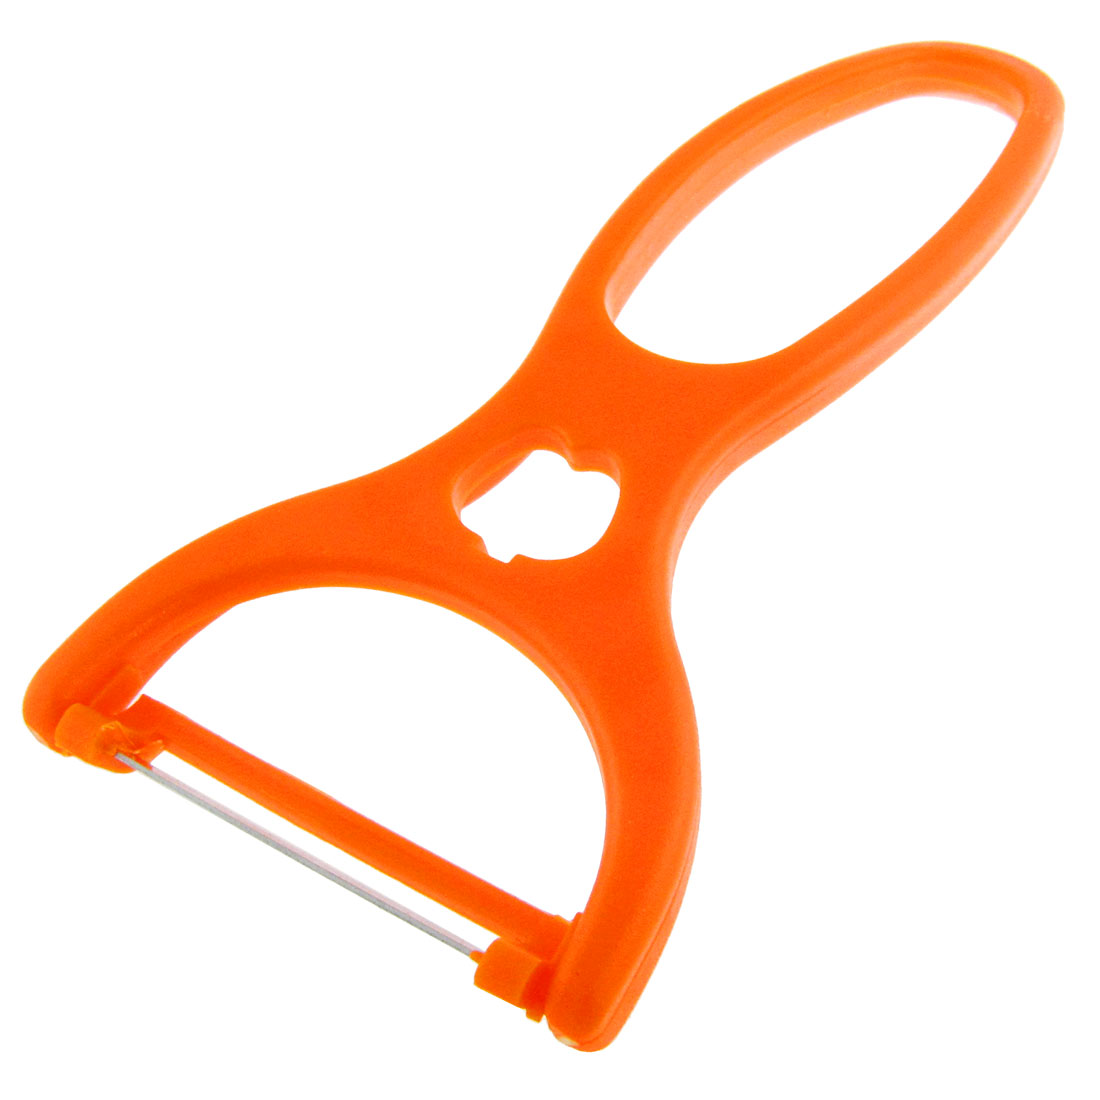 Orange Handle Stainless Steel Blade Fruit Vegetable Peeler Parer